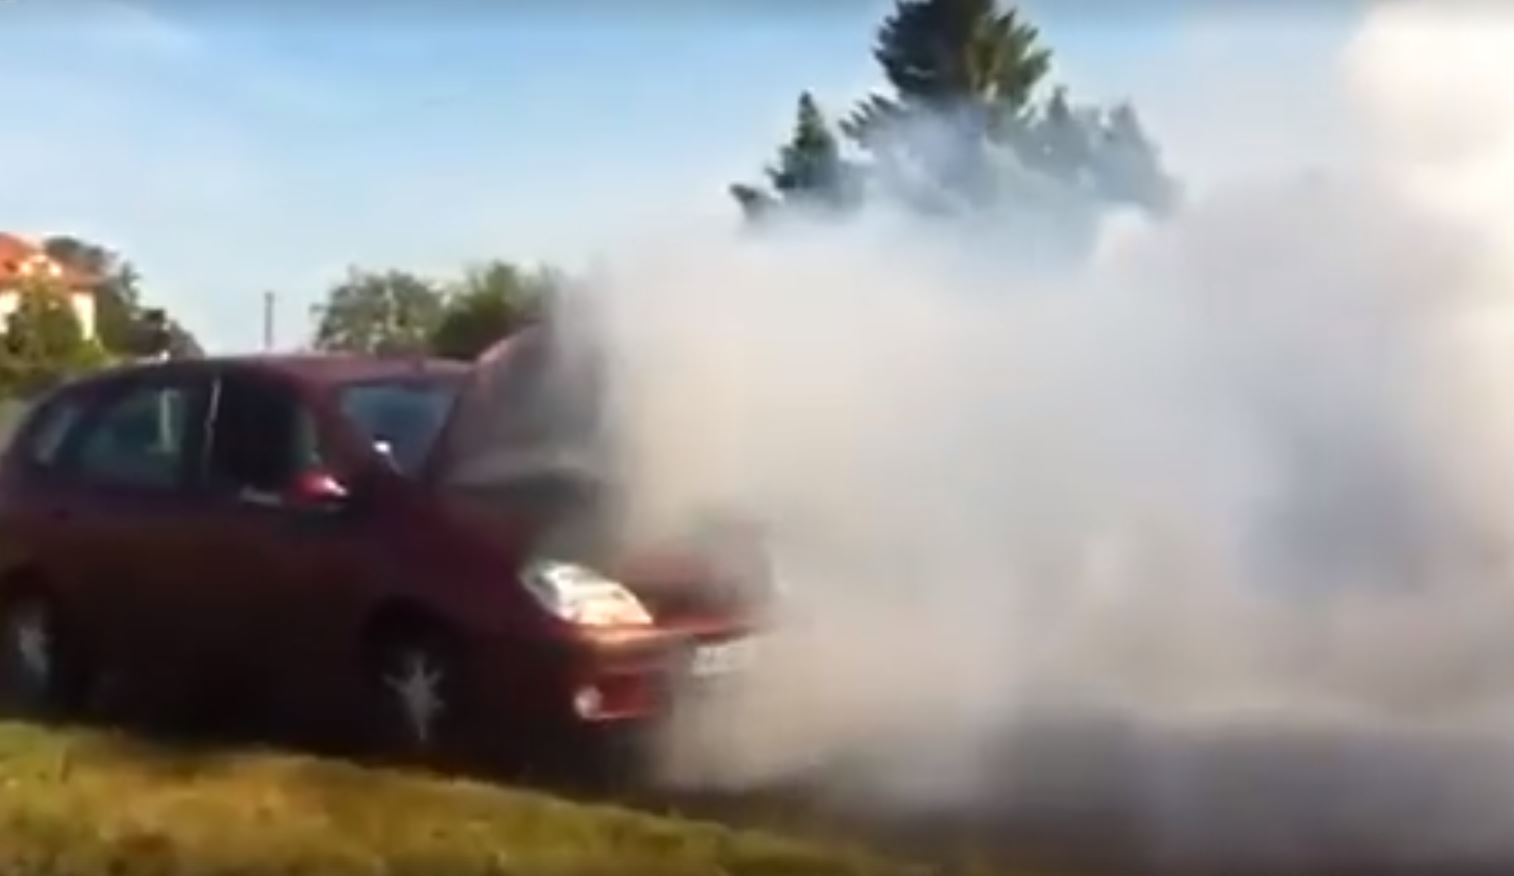 Motore turbo in autocombustione impazzisce - NEWSAUTO.it on